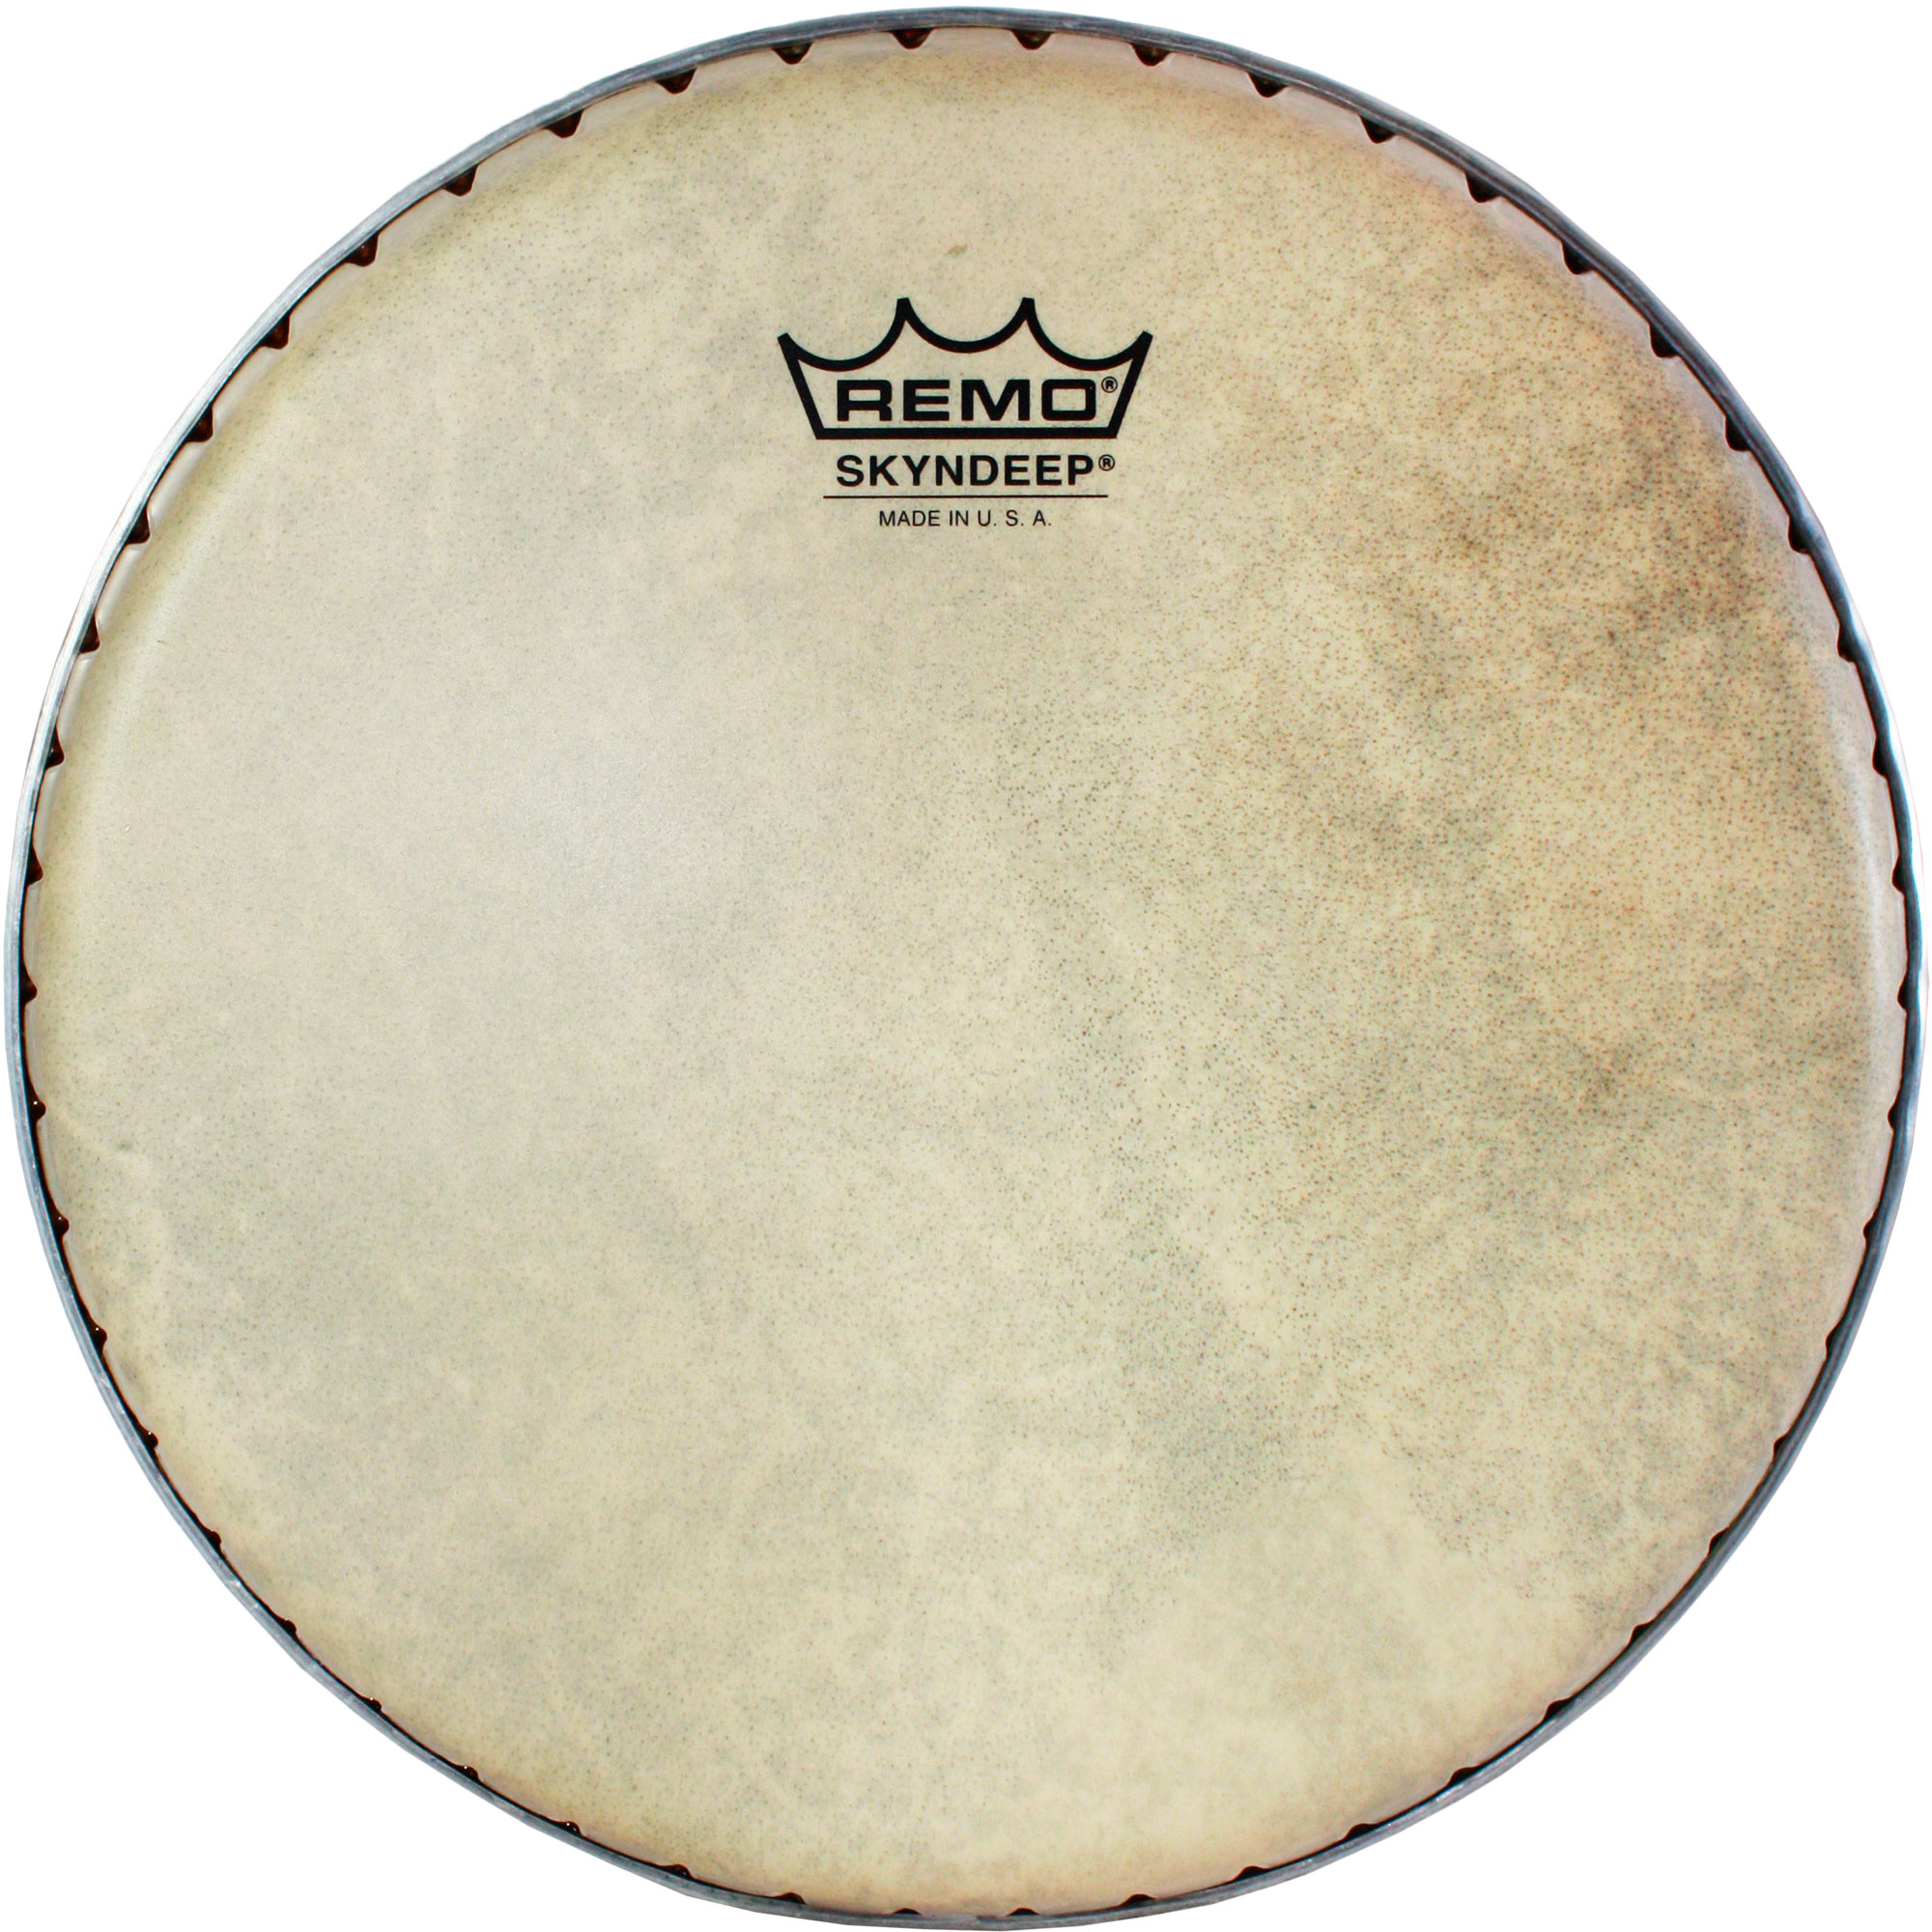 "Remo 9.75"" Symmetry Skyndeep Conga Drum Head (D1 Collar) with Calfskin Graphic"